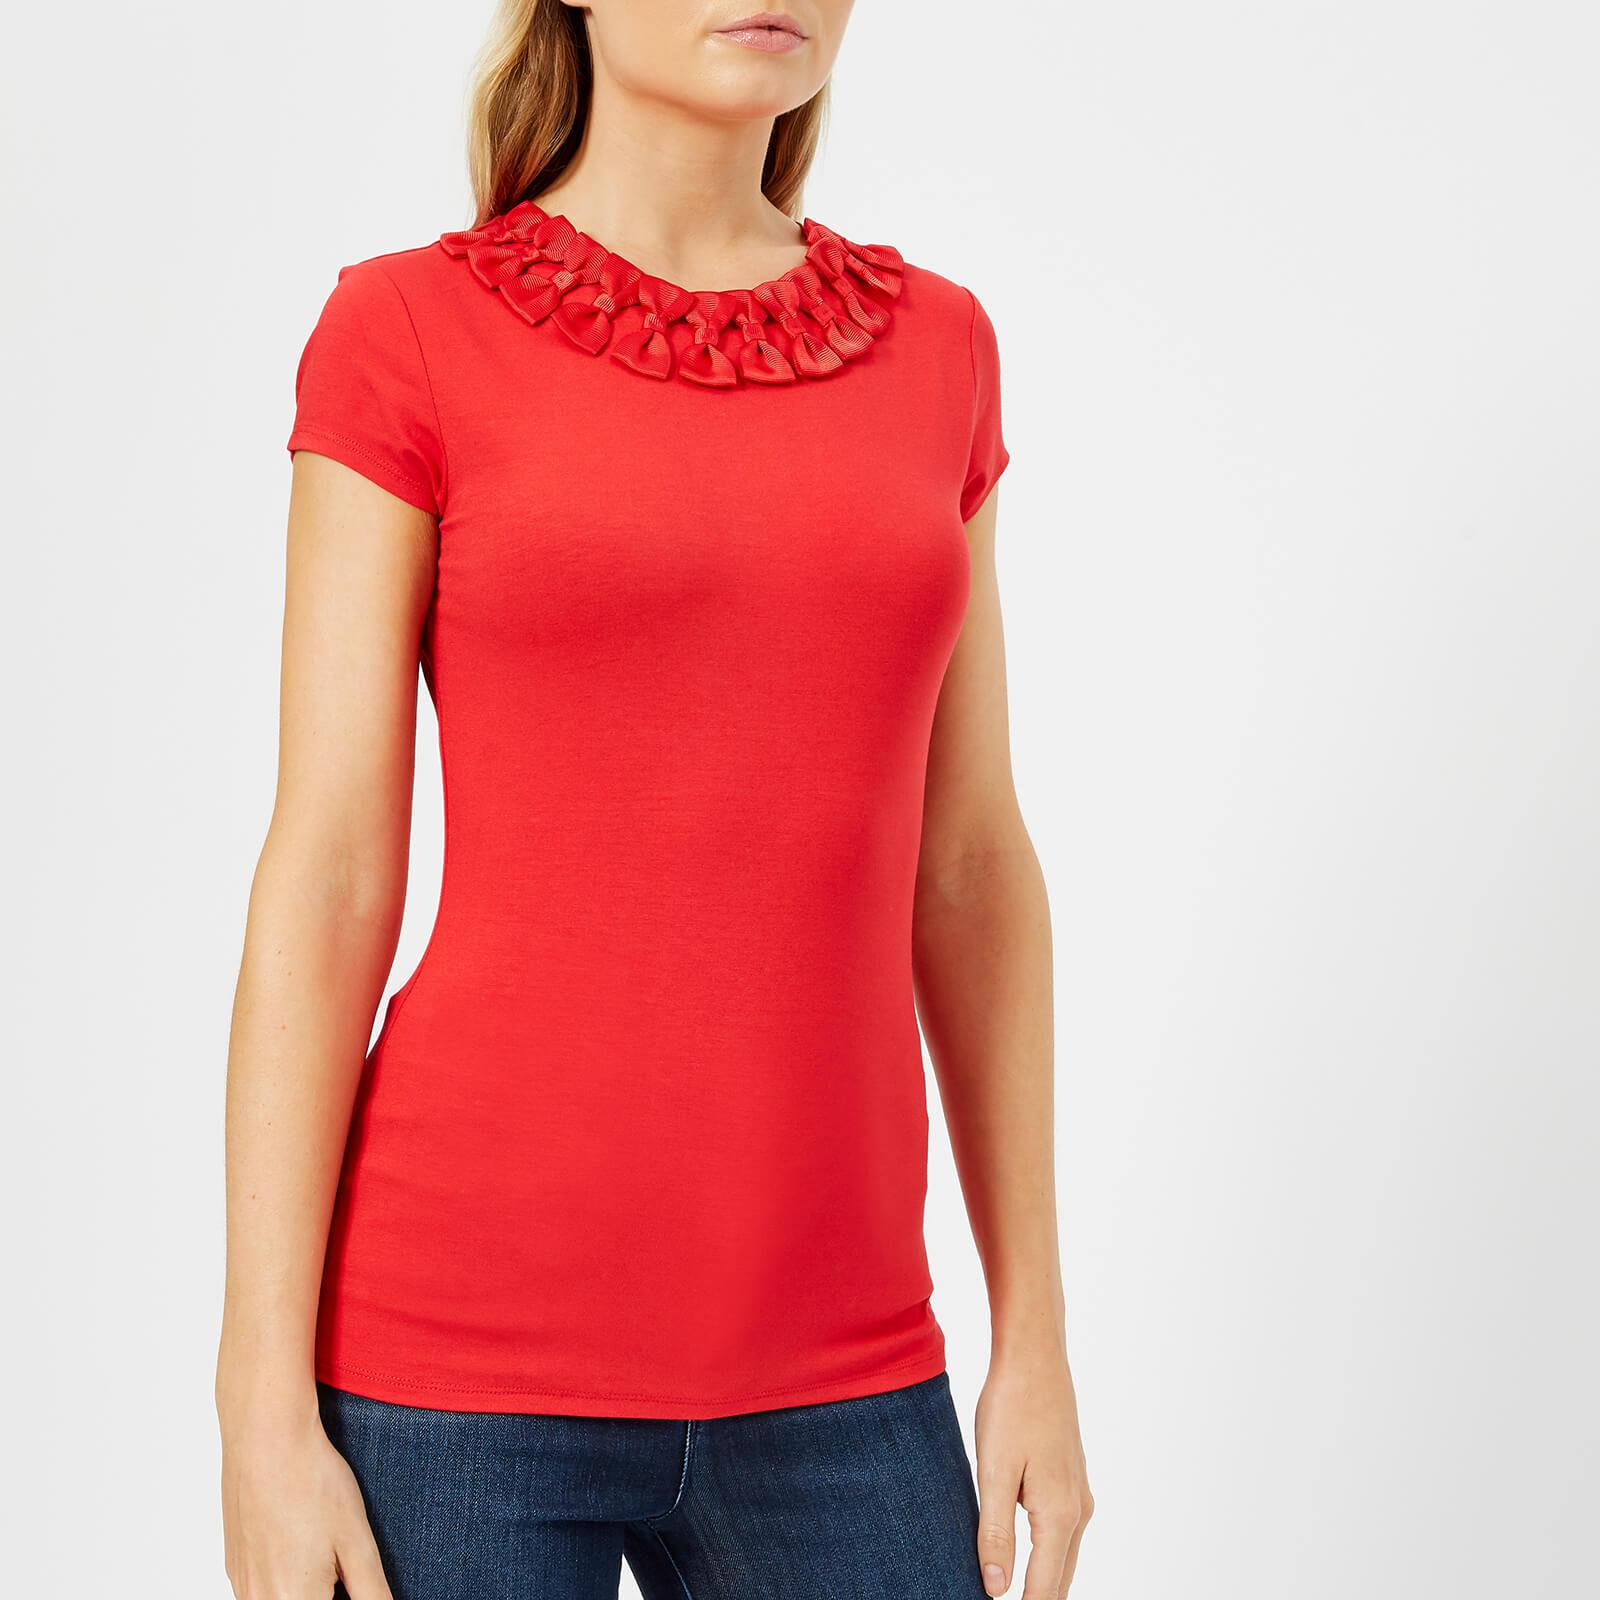 dffd060b150bf Lyst - Ted Baker Charre Bow Neck Trim Detail T-shirt in Red